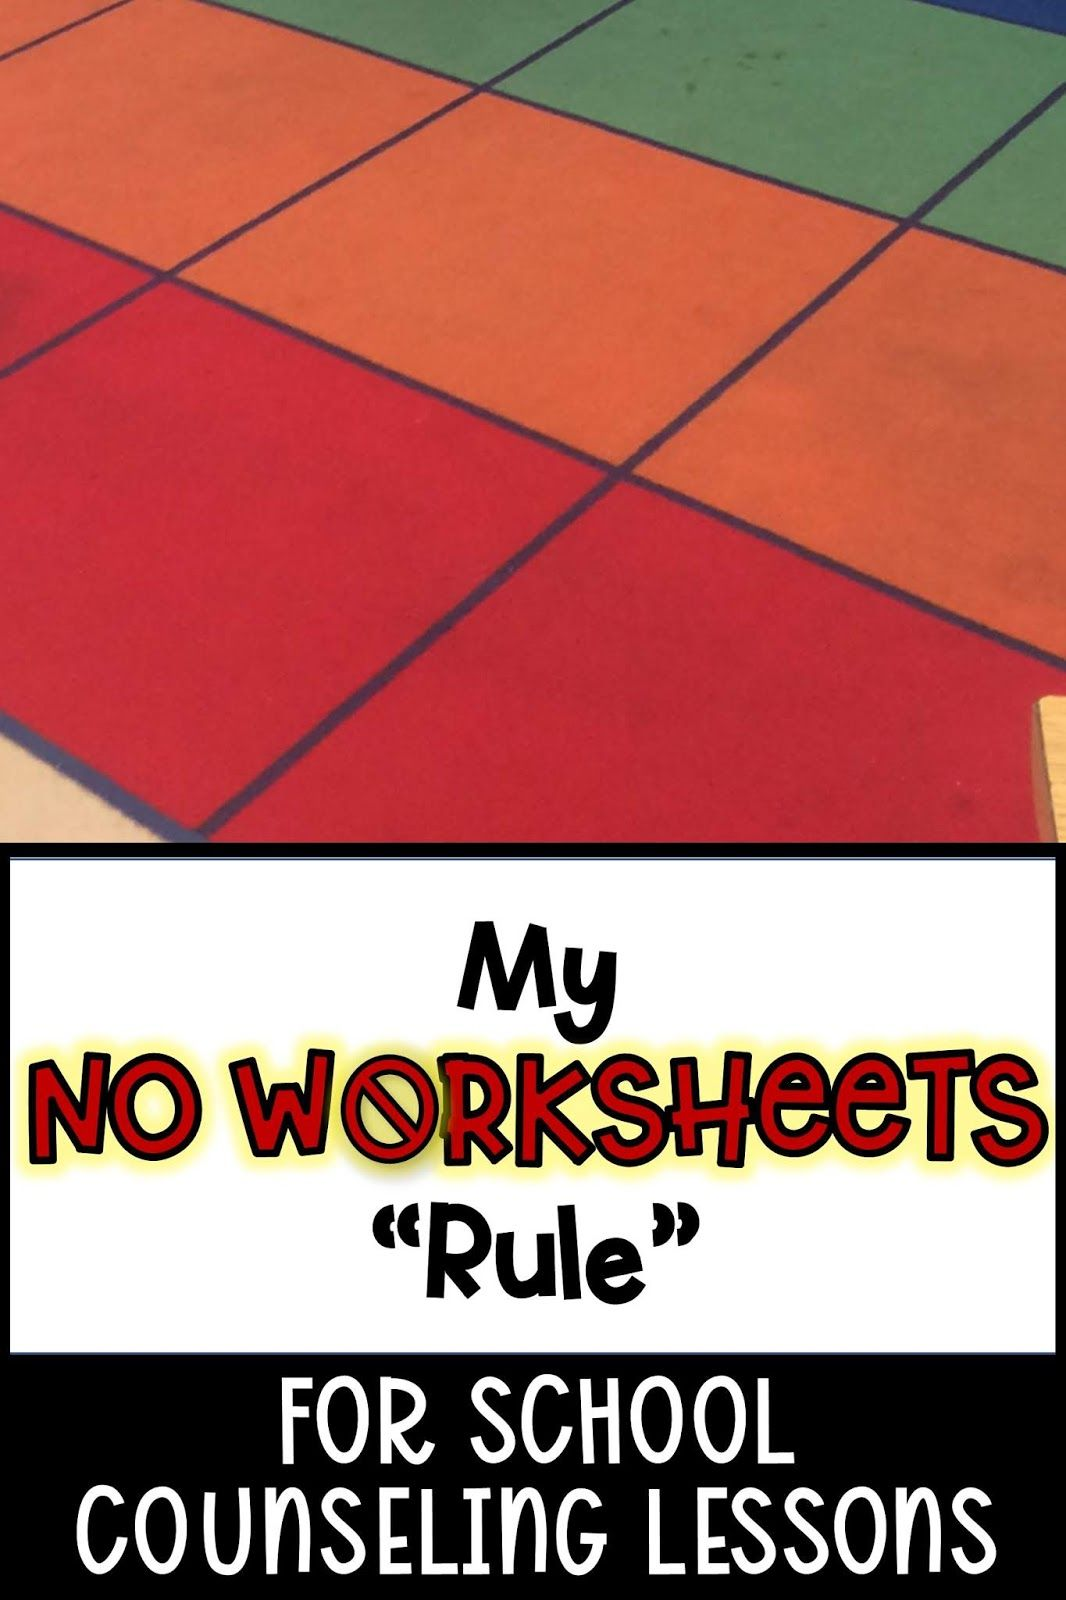 My No Worksheets Rule